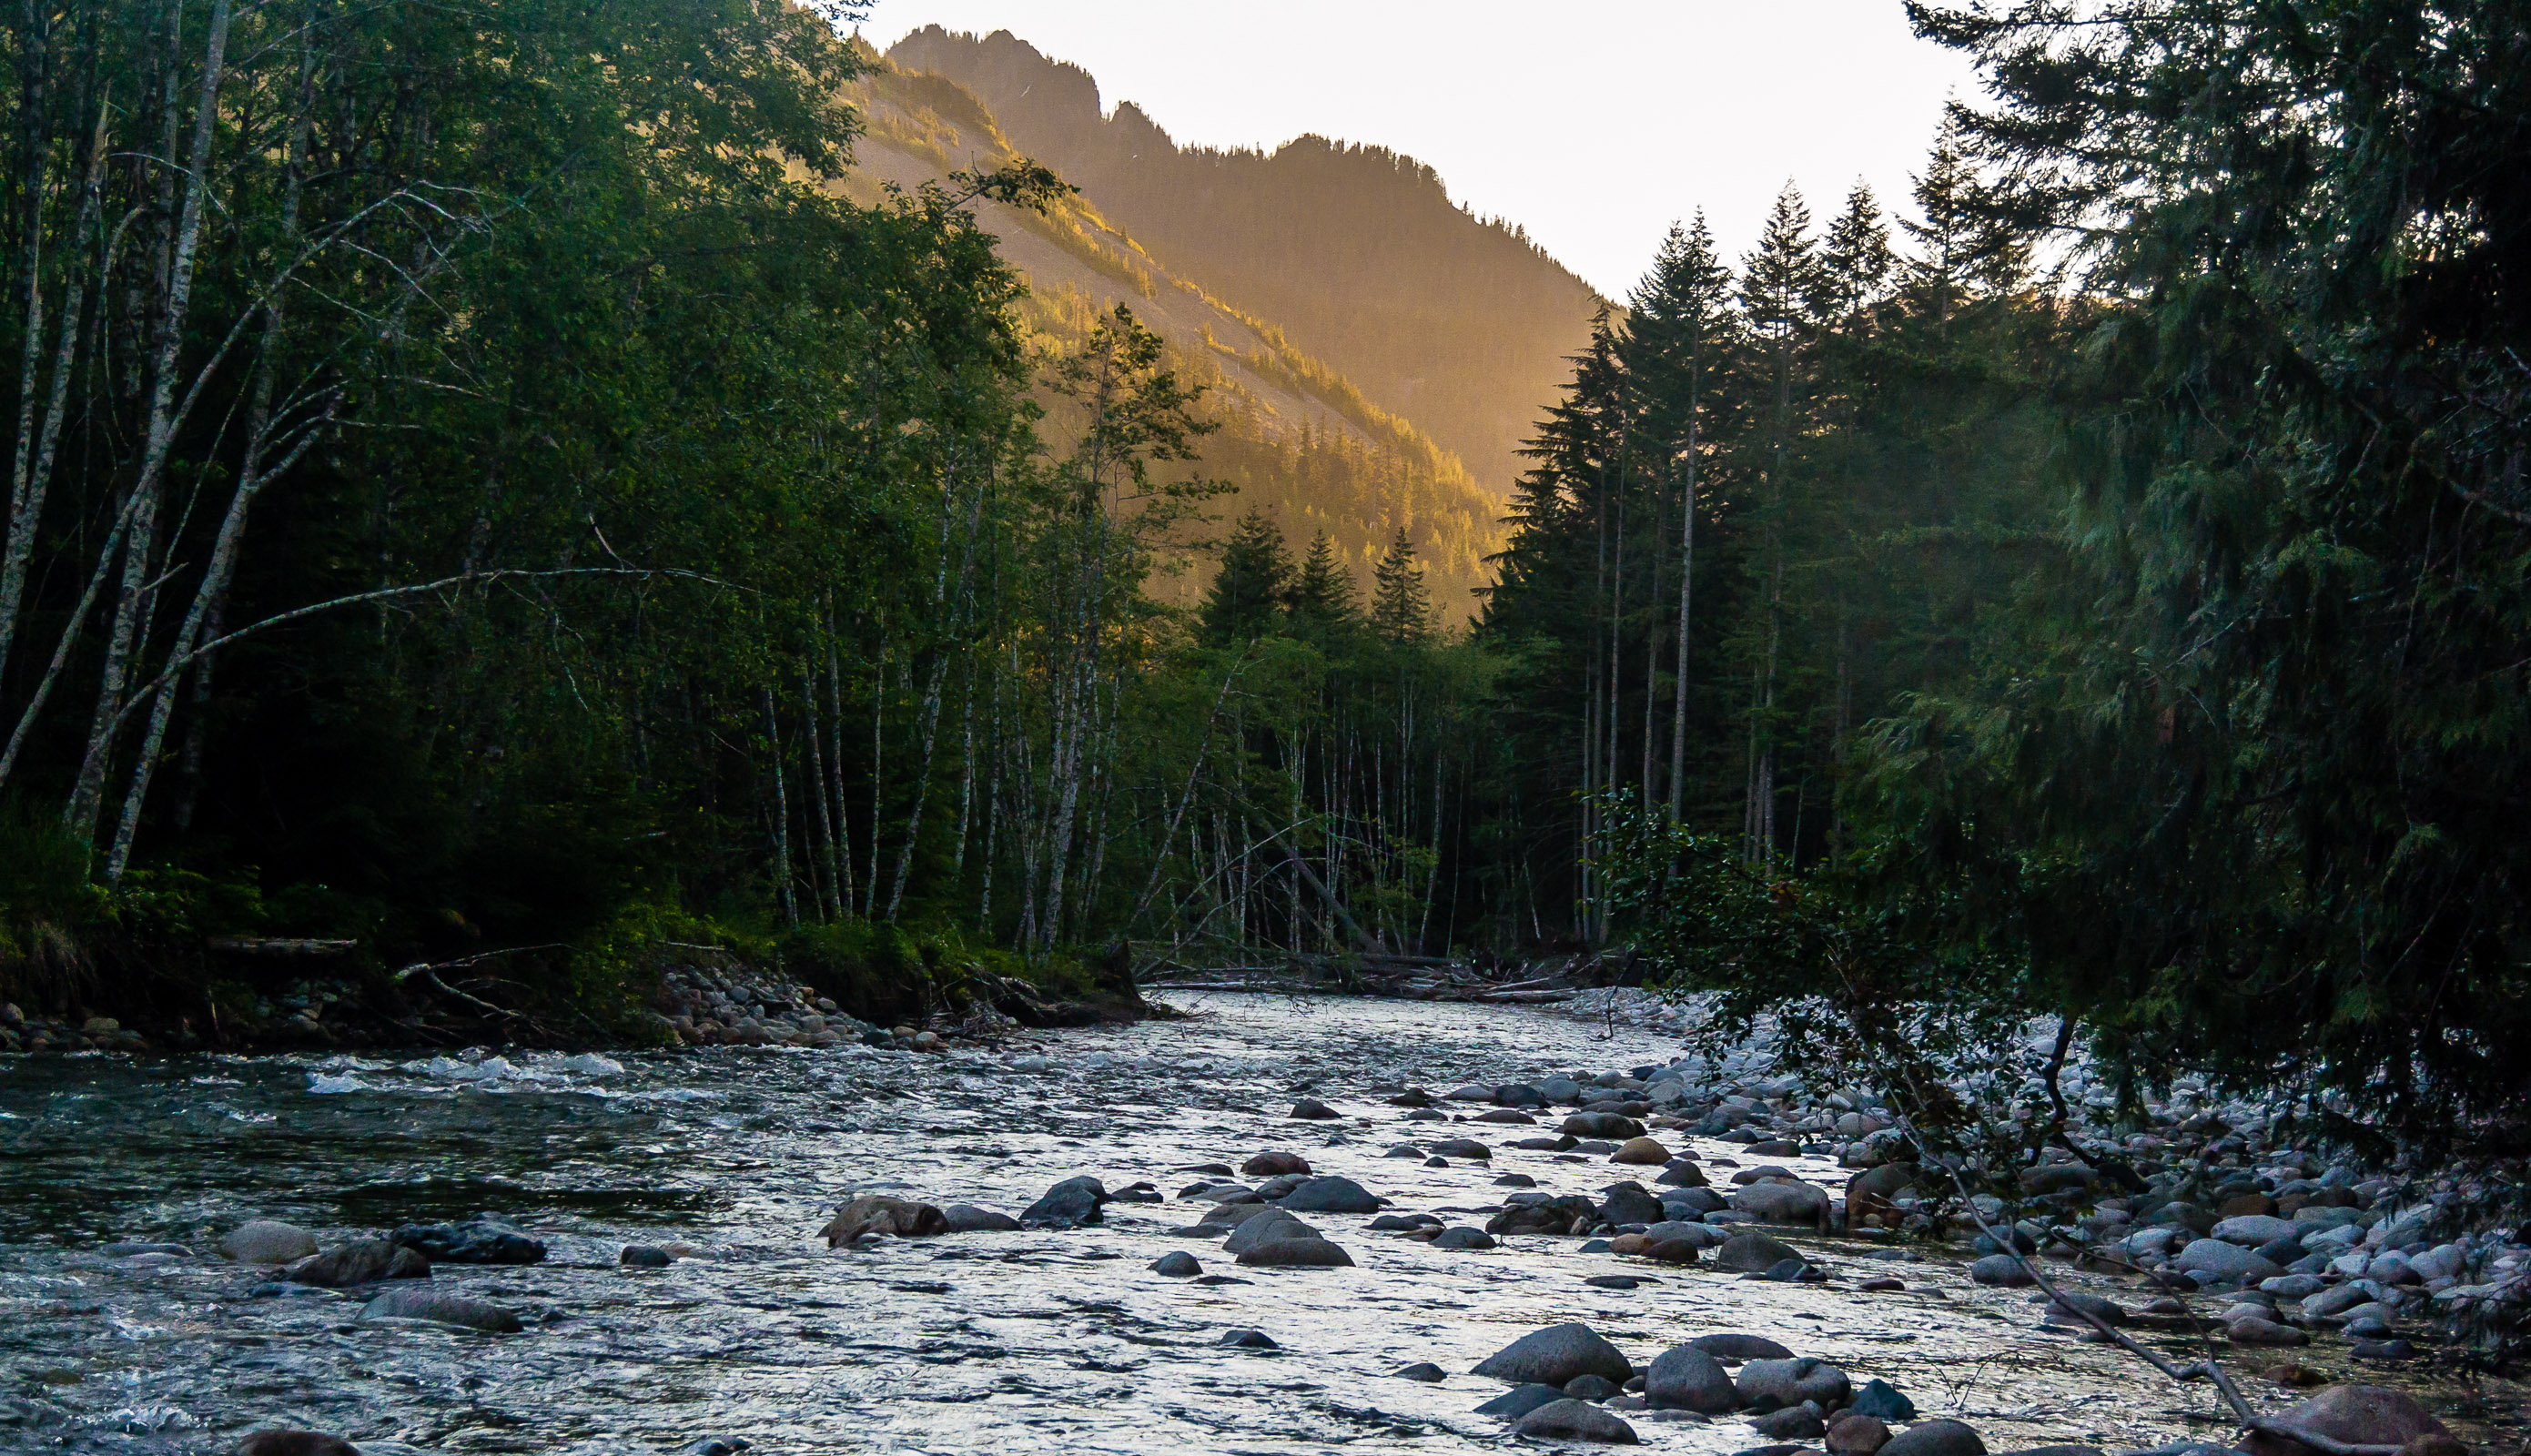 From the South Fork Snoqualmie River in Washington.